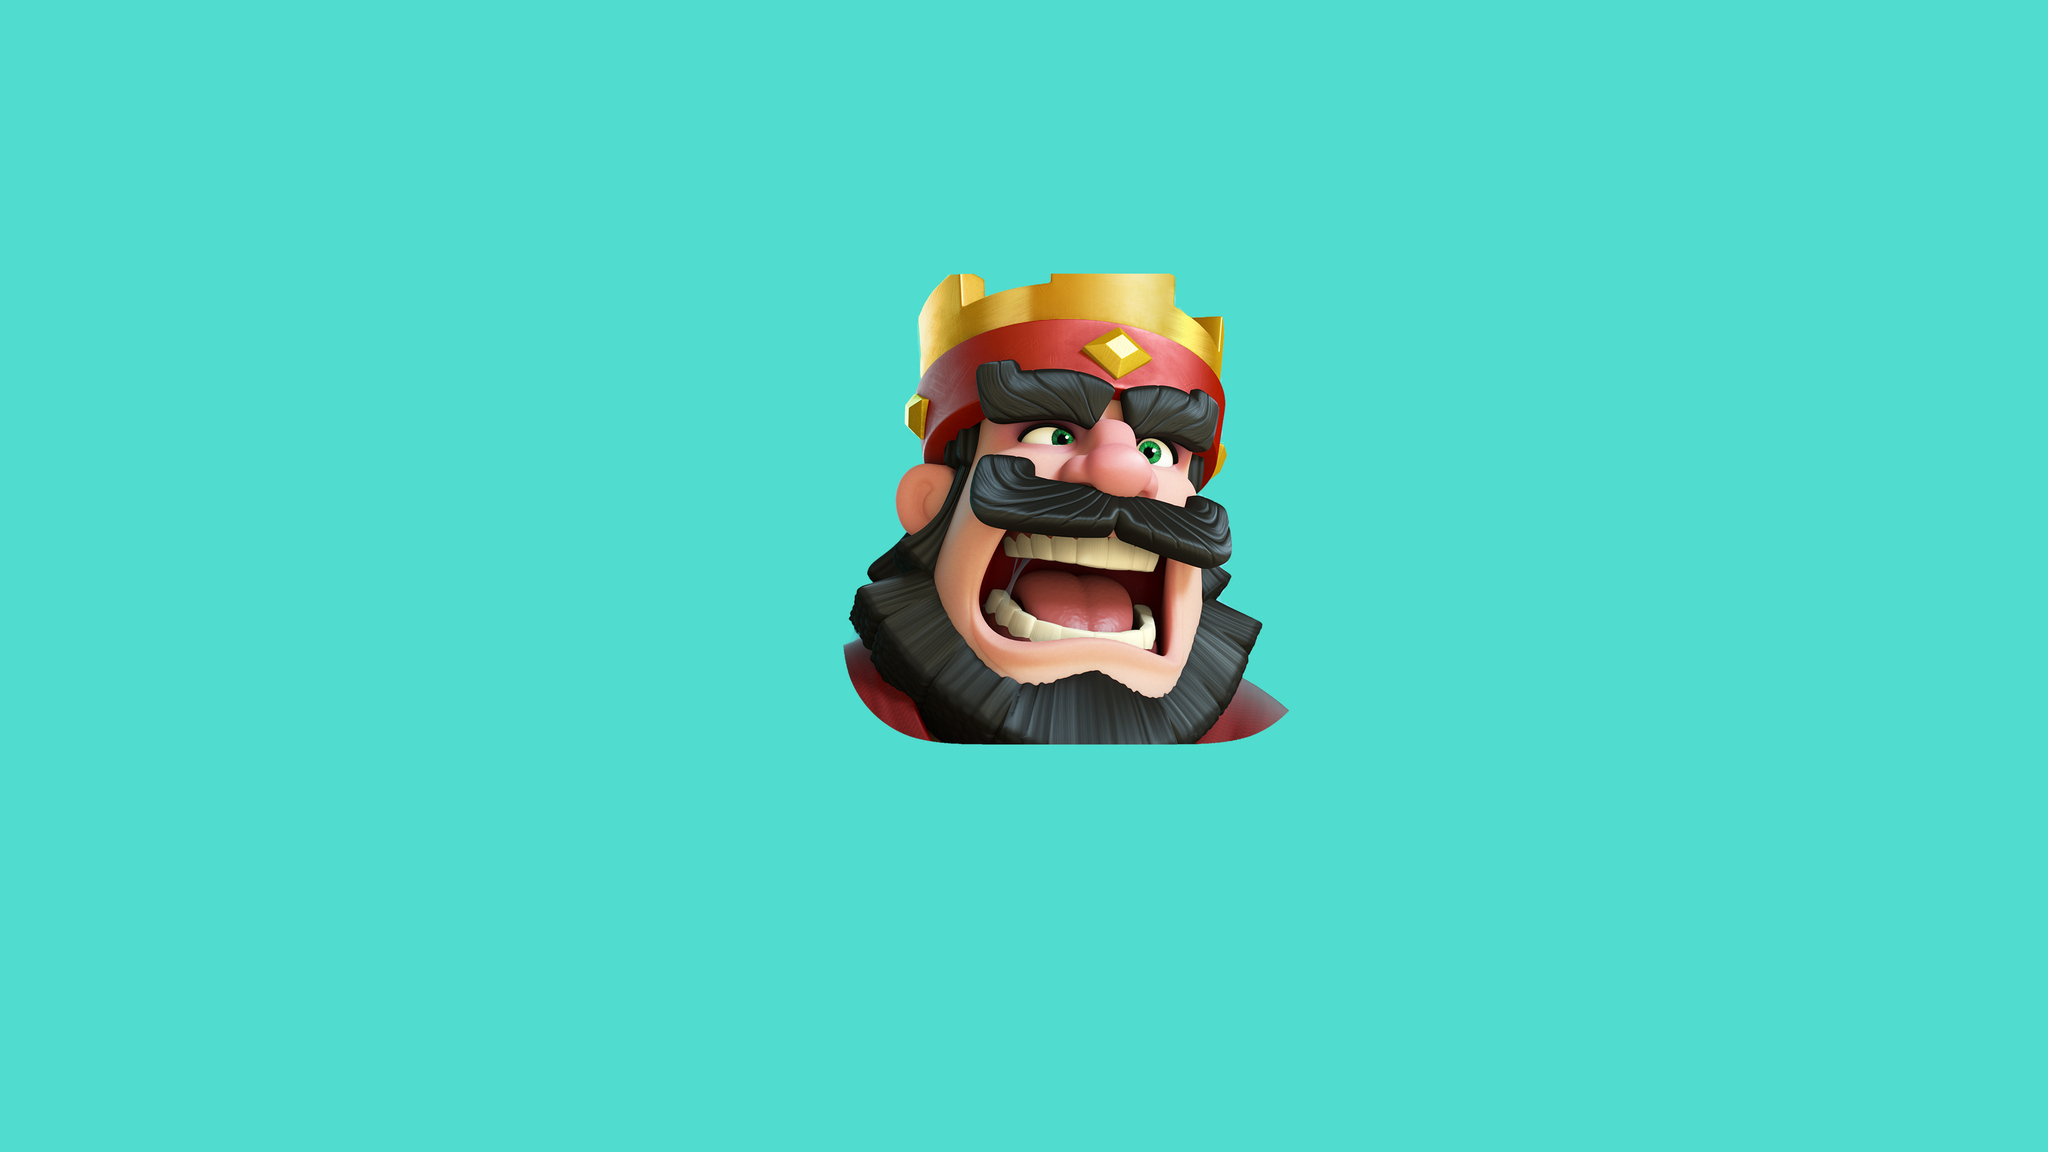 2048x1152 clash royale king 2048x1152 resolution hd 4k wallpapers images backgrounds photos - Clash royale 2560x1440 ...